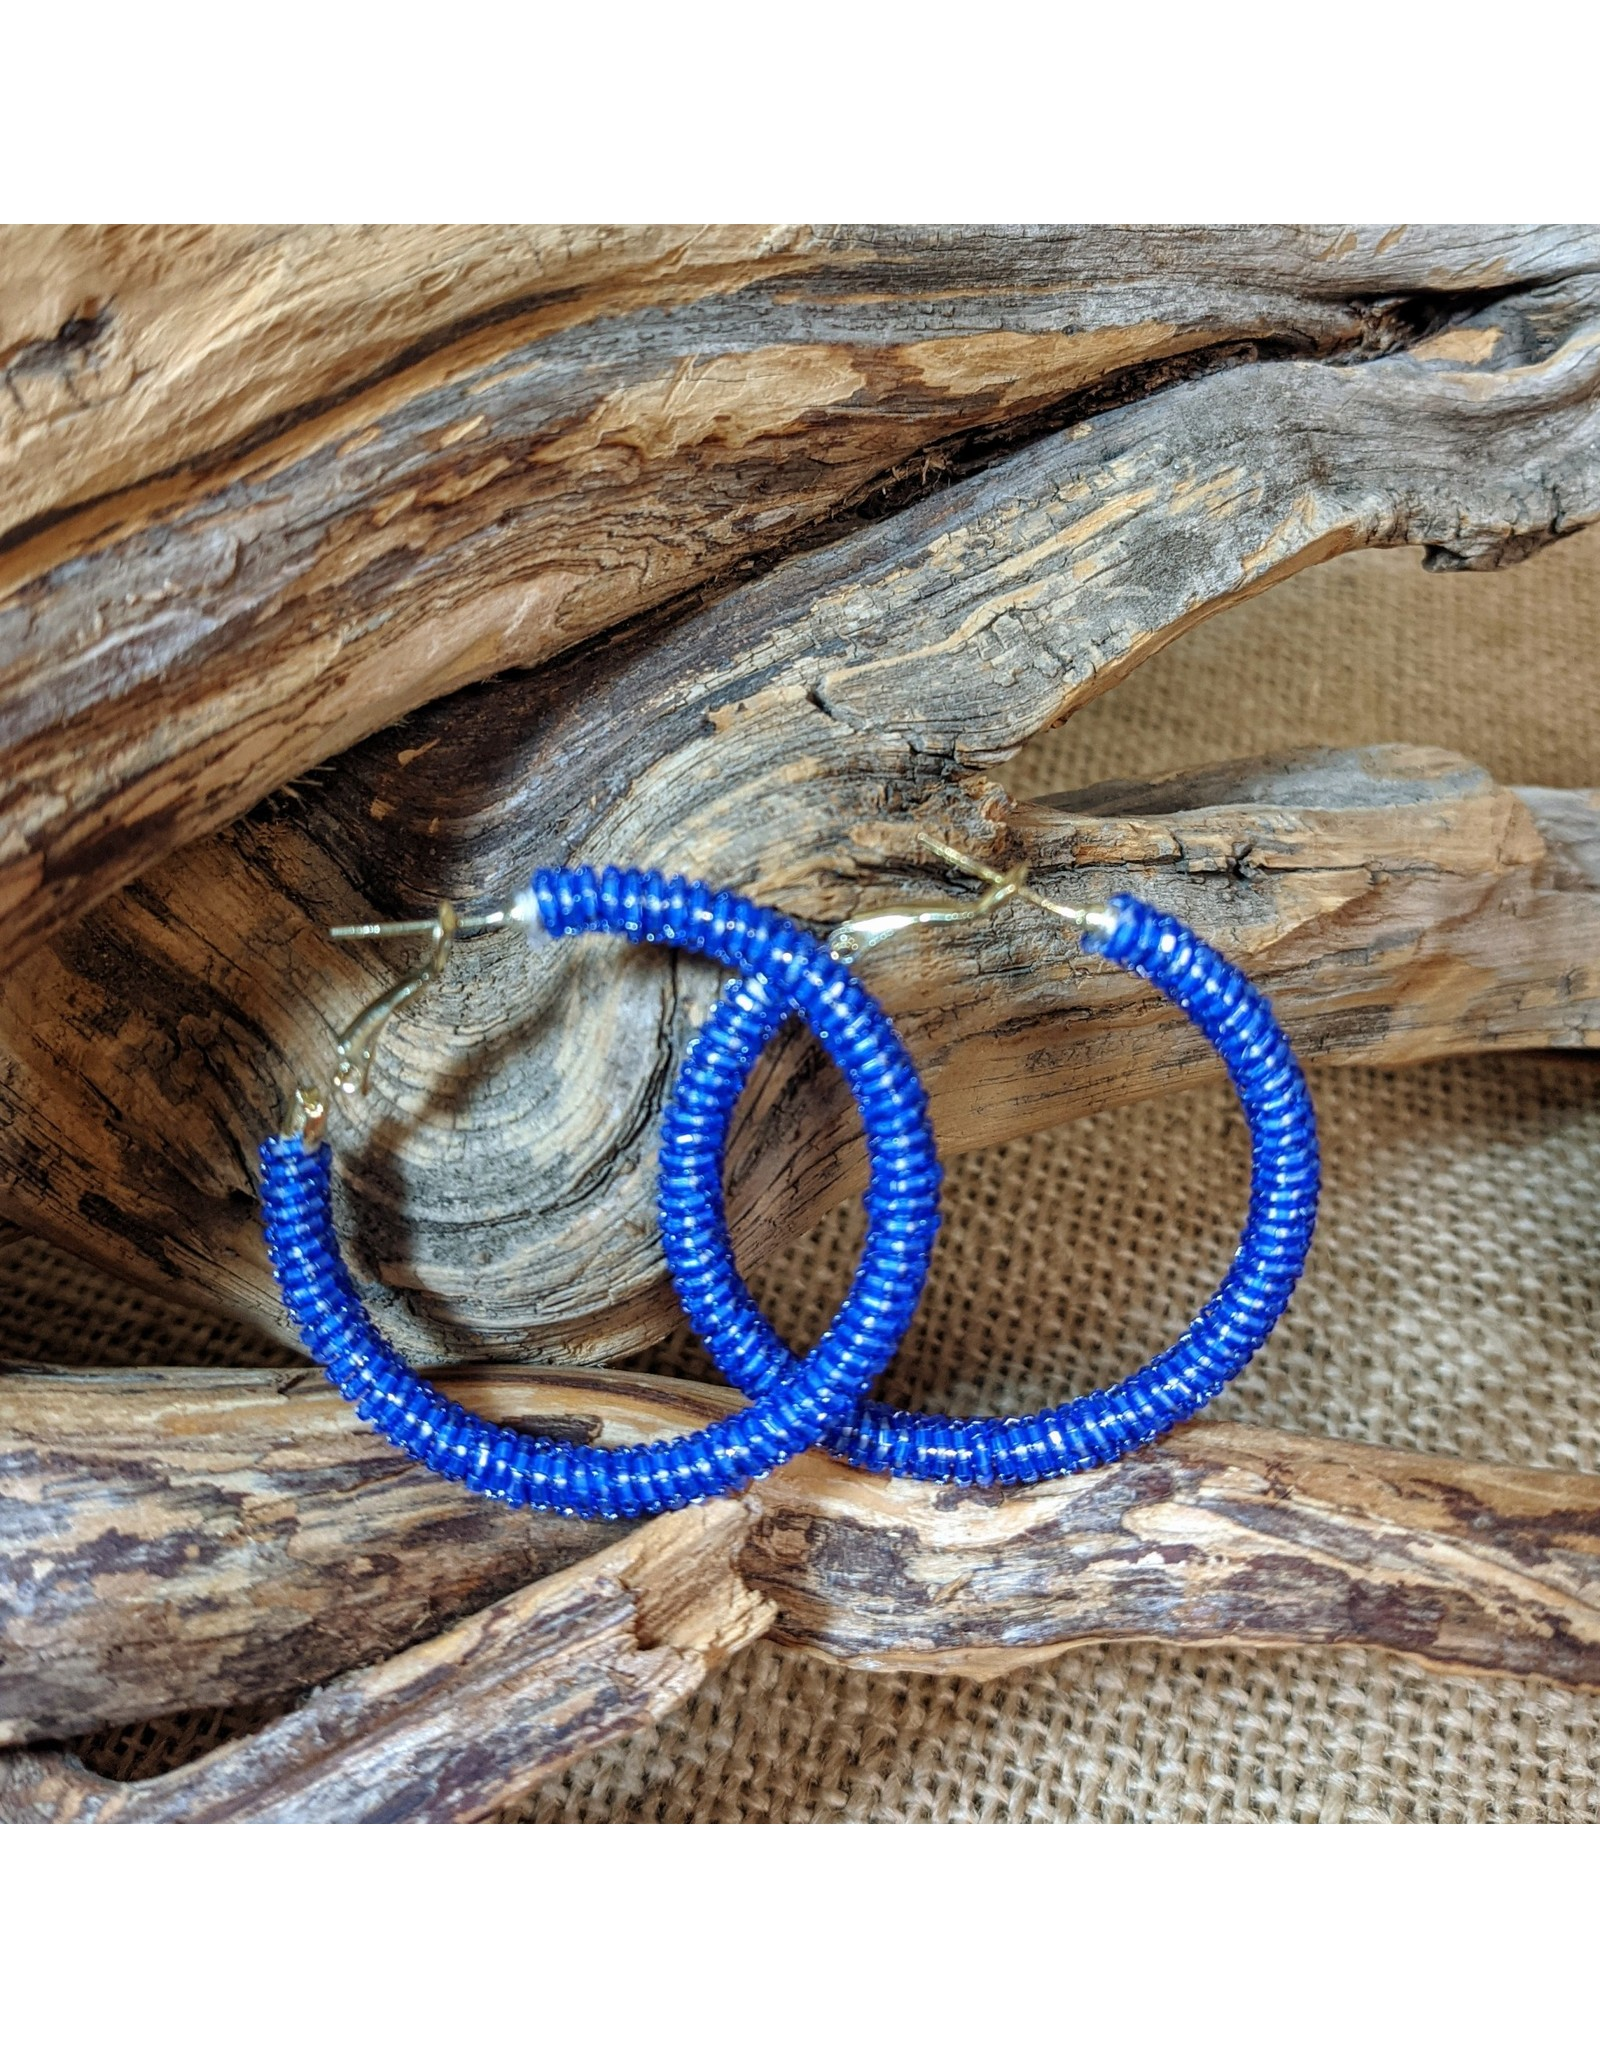 Ten Thousand Villages CLEARANCE Blue Glass Bead Hoop Earrings, India